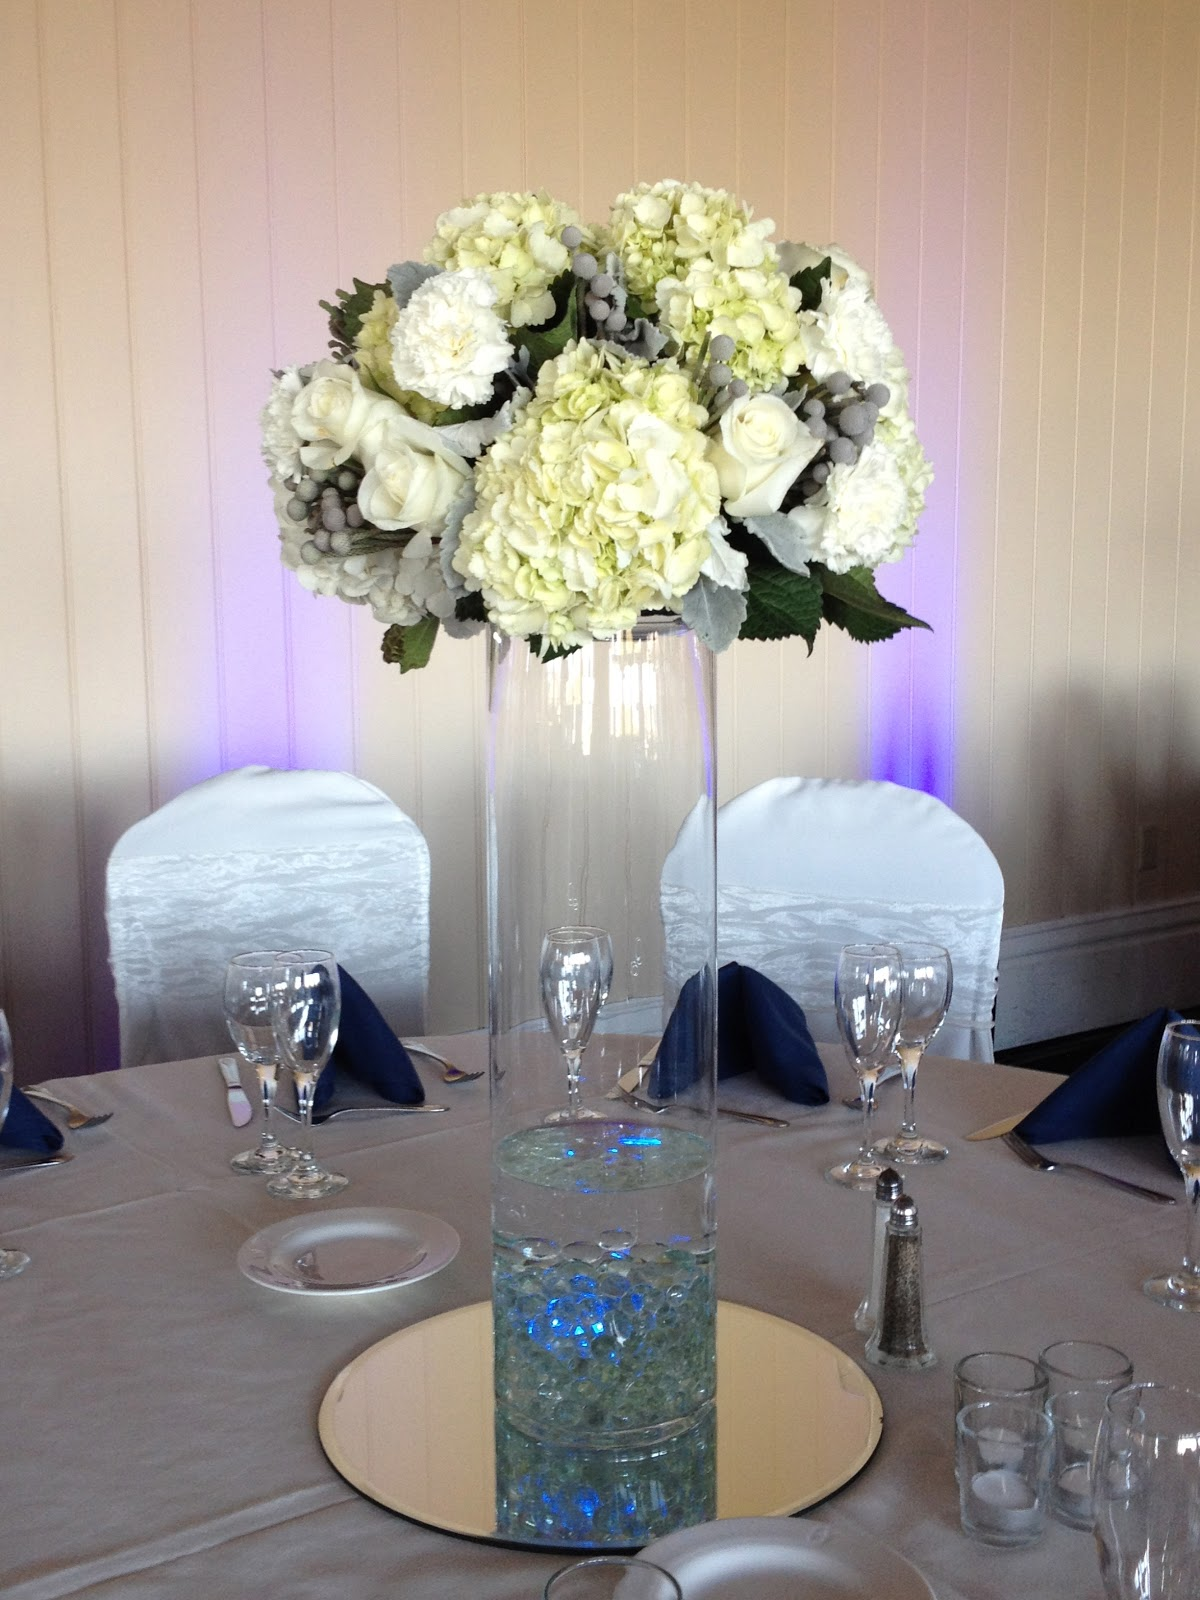 Sweet pea wedding services rev beck upgraded tall